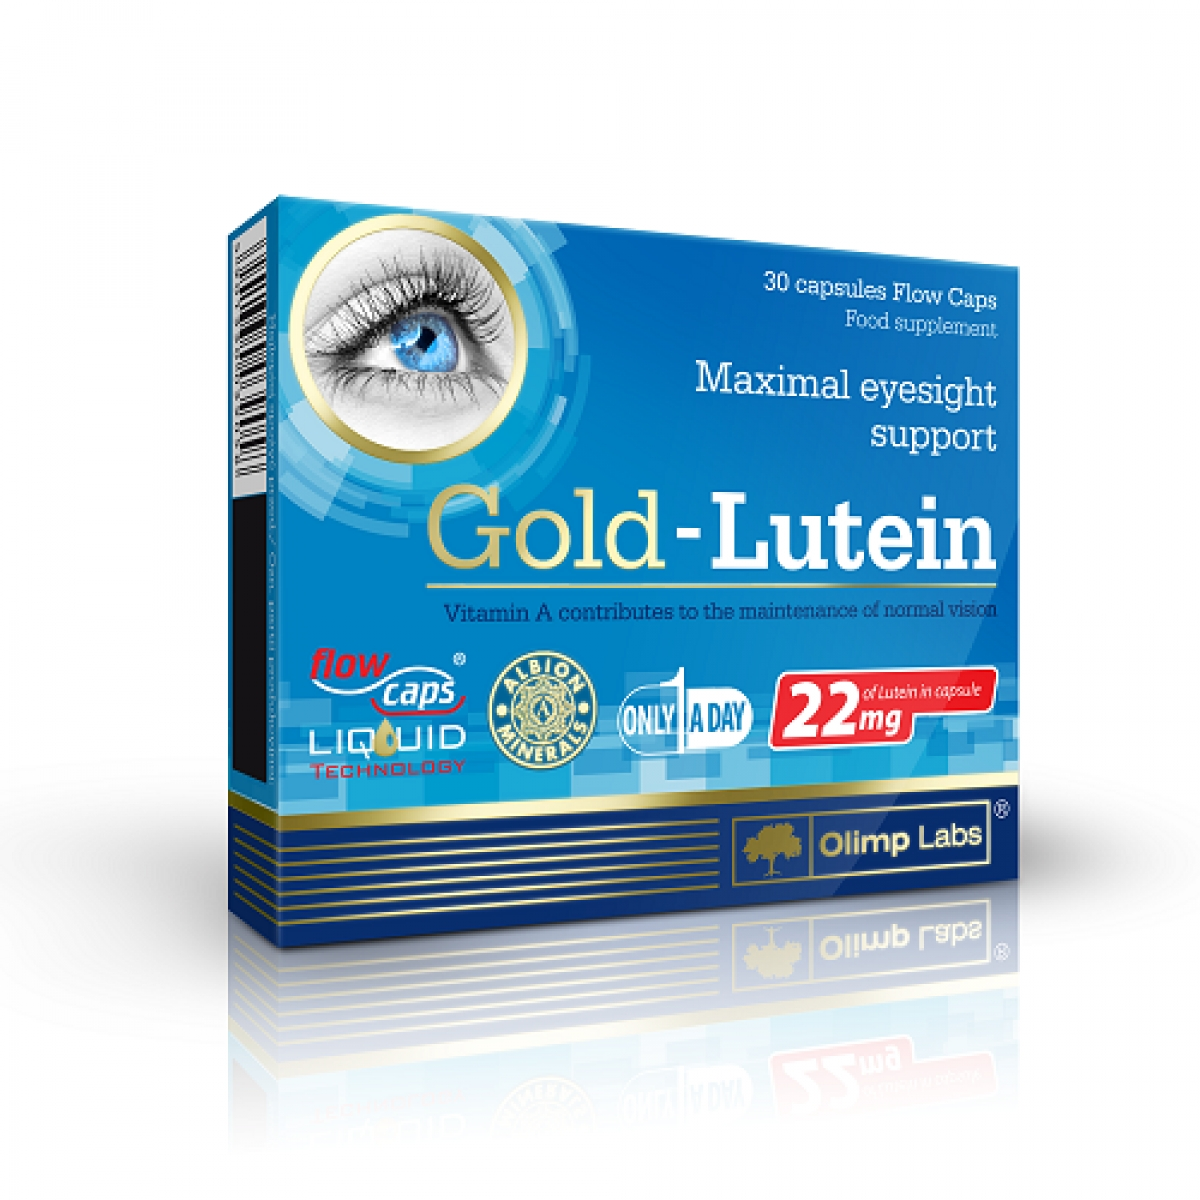 GOLD LUTEIN, 30 CAPSULES